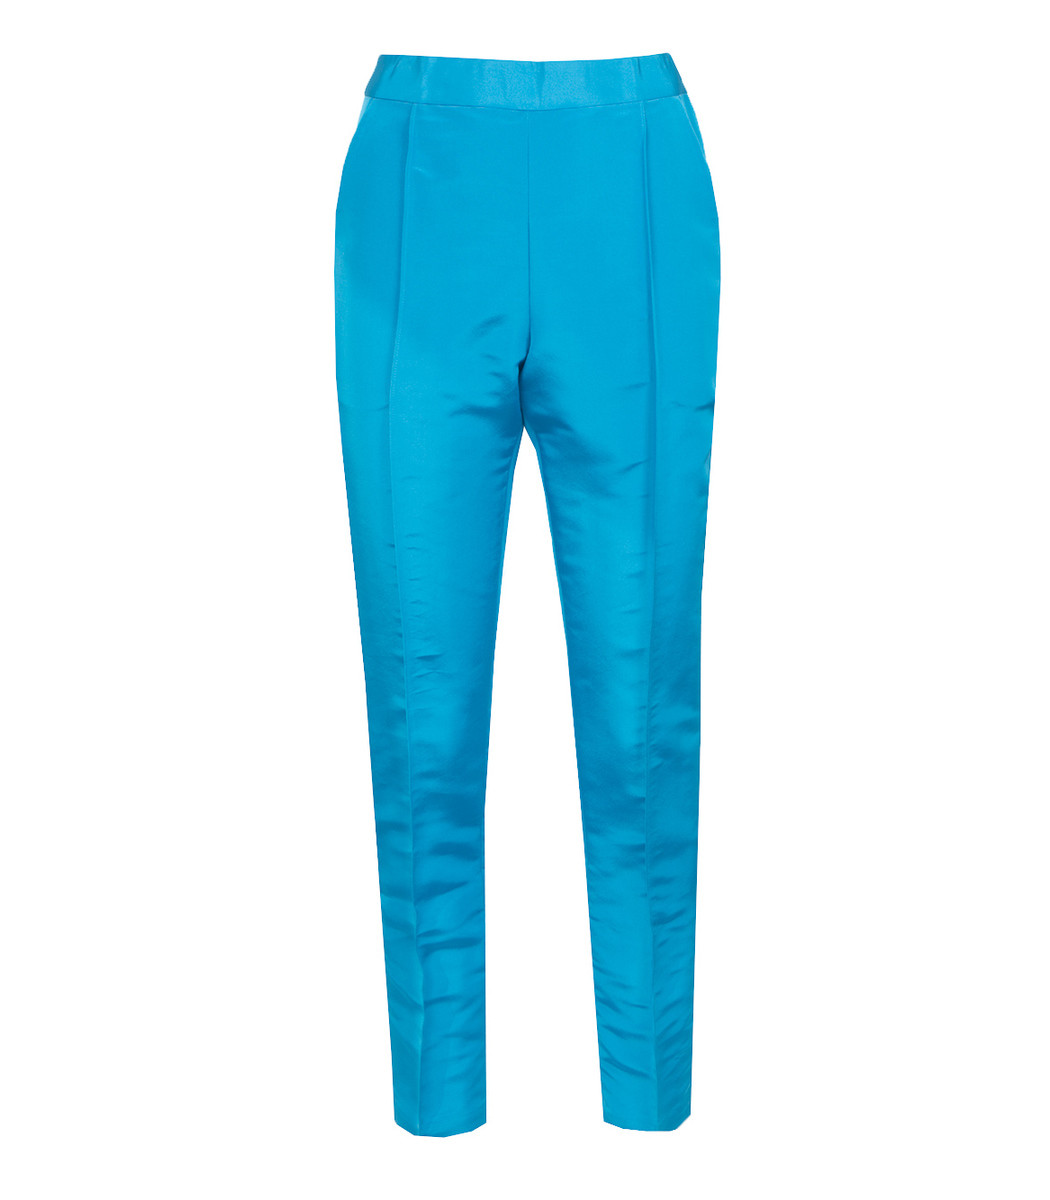 Rosie Assoulin Blue X The Webster Oboe Pant